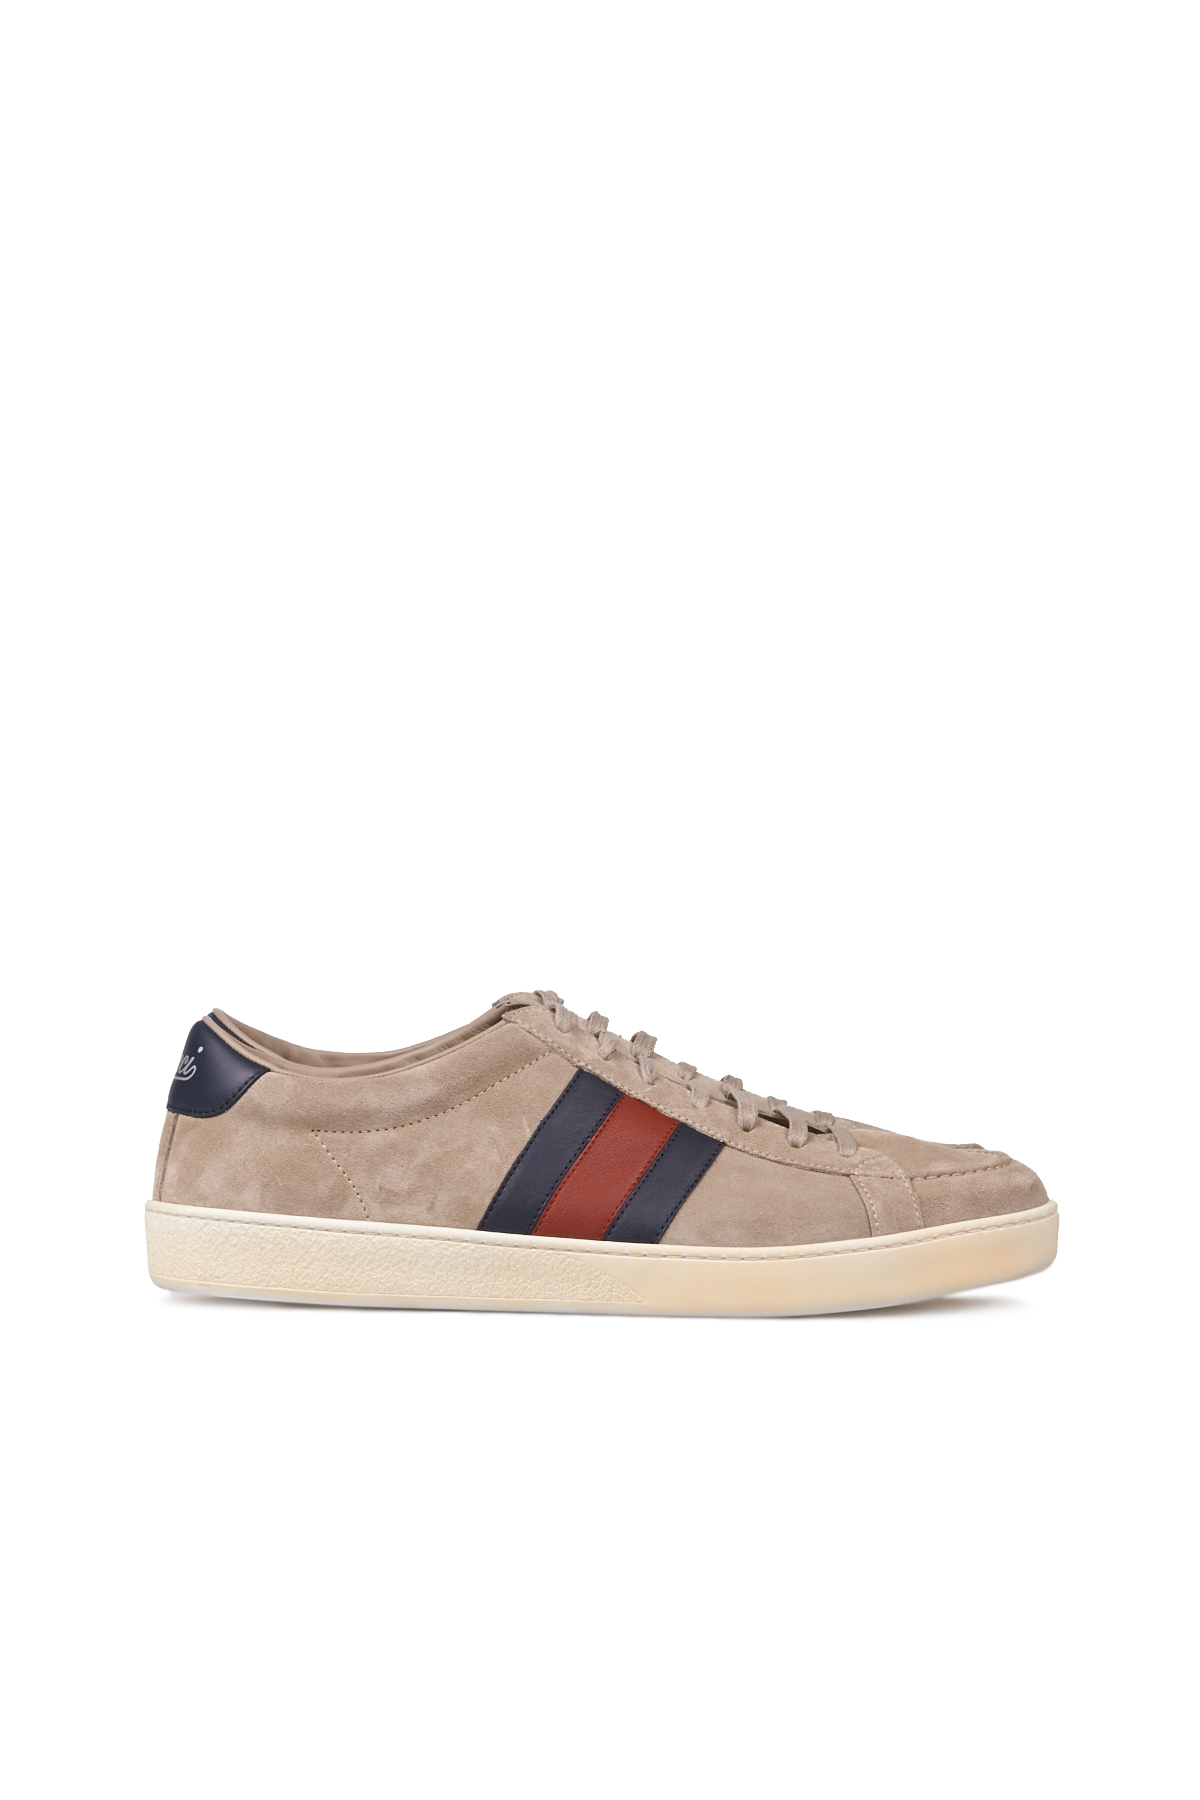 Gucci leather sneakers available at www.fatimamendes.com